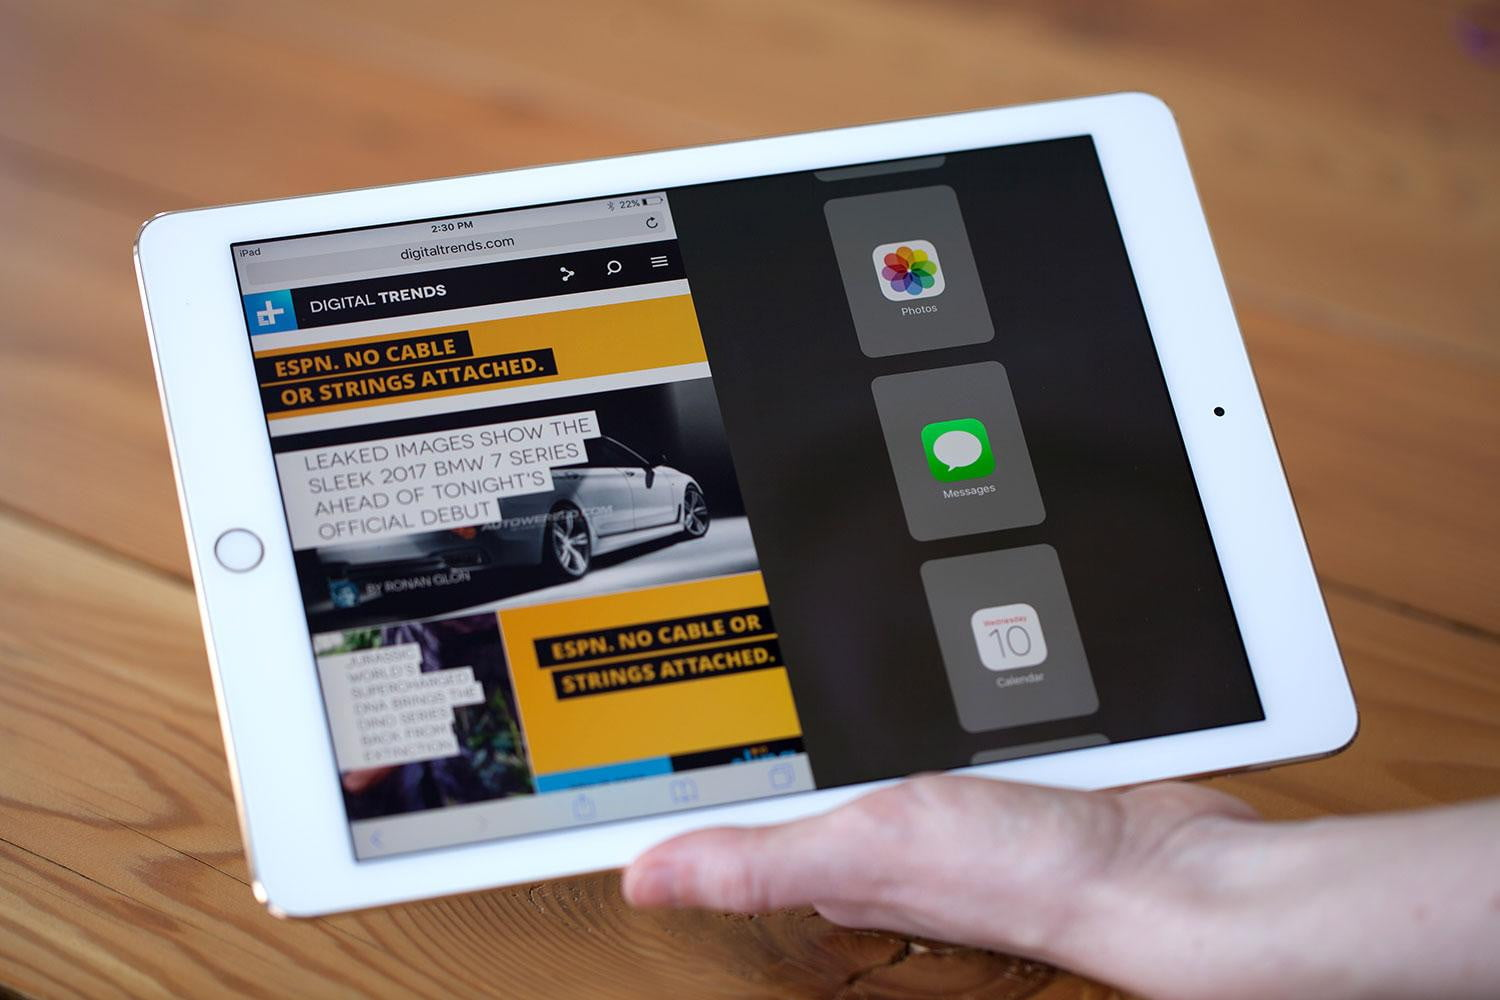 iOS 9 Is An Excellent Reason Not To Buy An iPad ... Yet ...